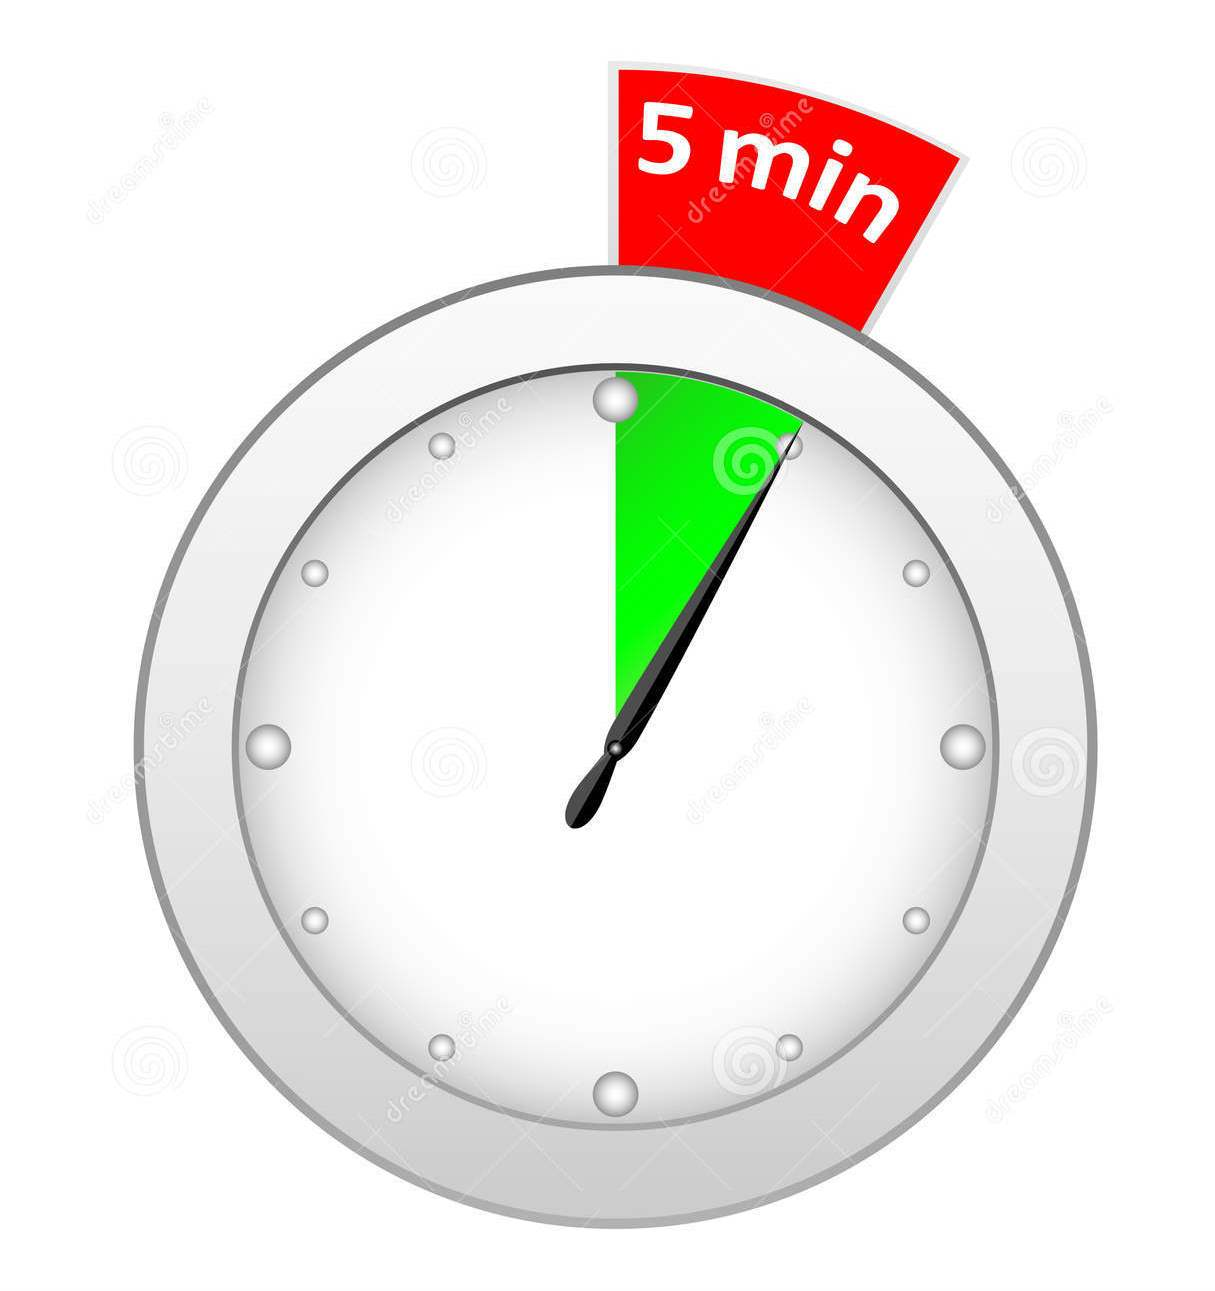 http://www.dreamstime.com/stock-image-timer-5-minutes-image18884261